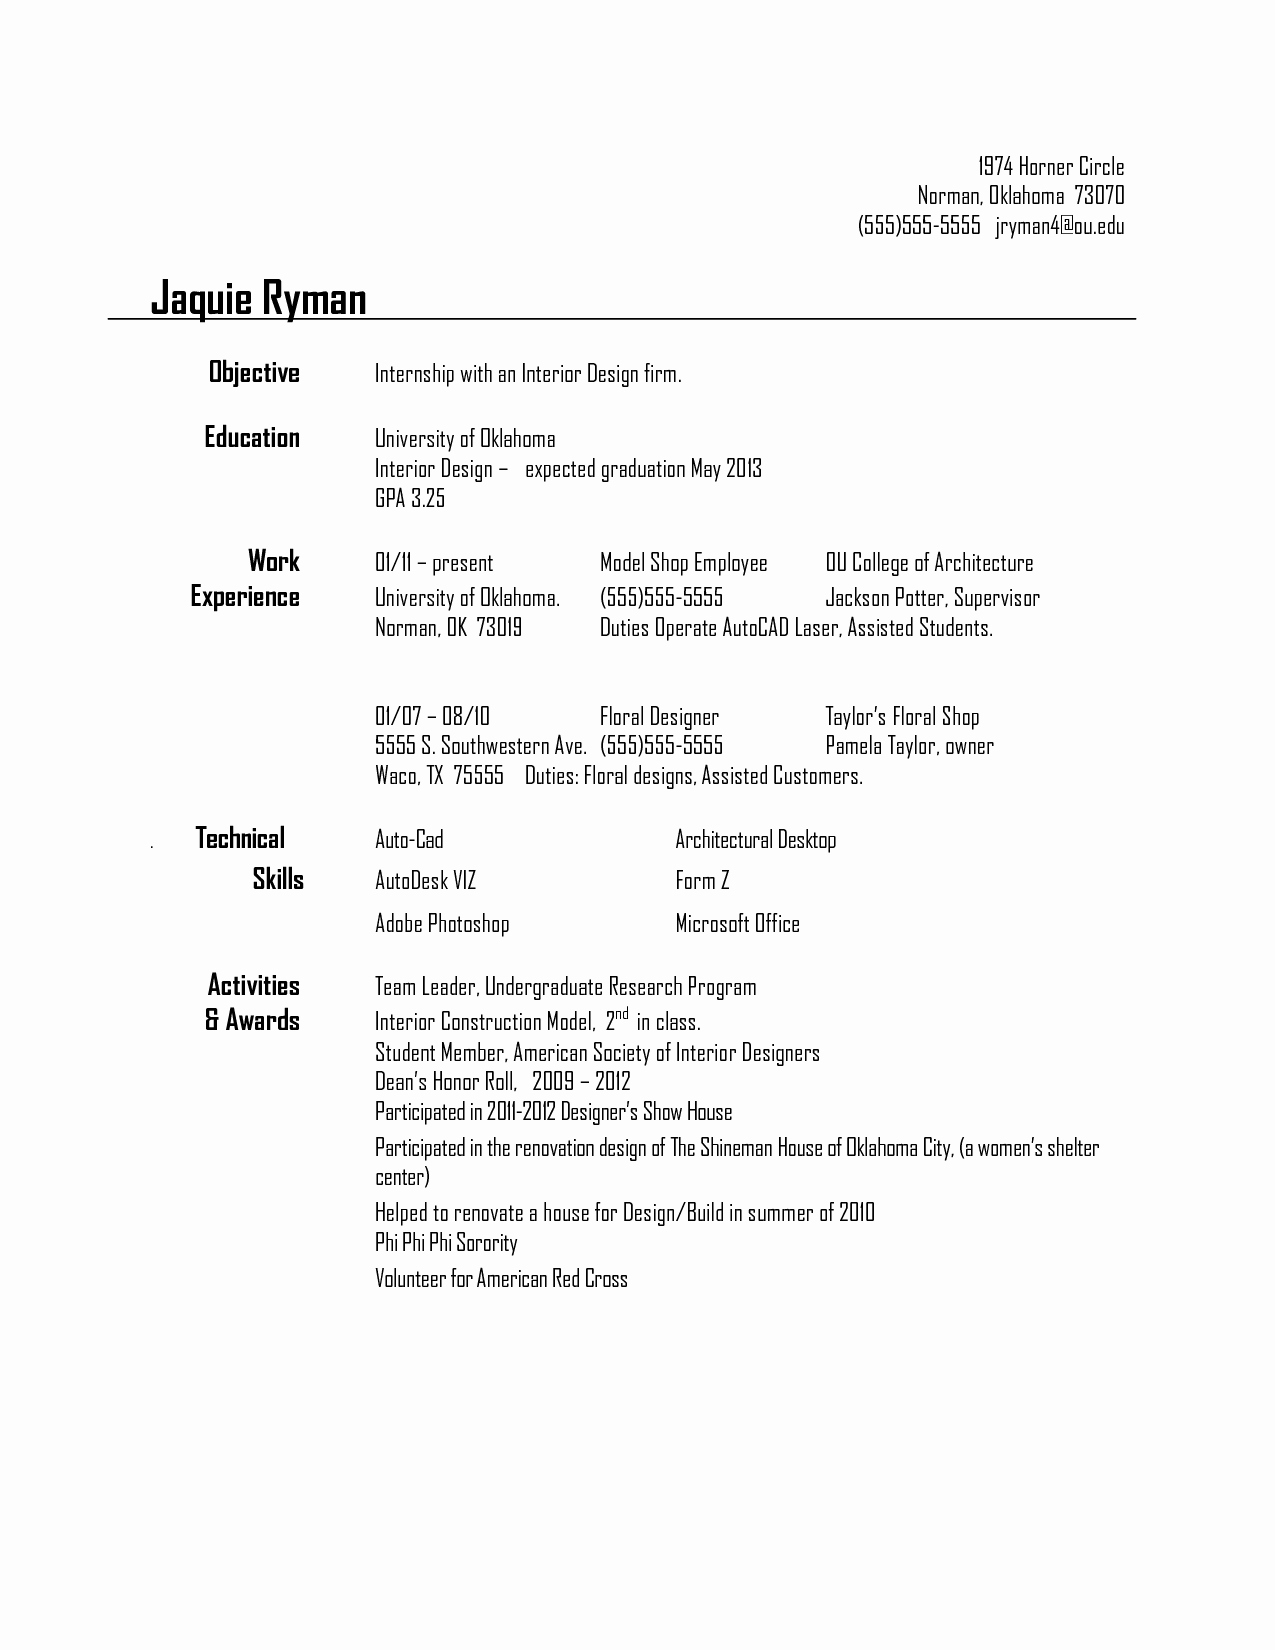 Resume for Interior Design Internship Resume Ideas